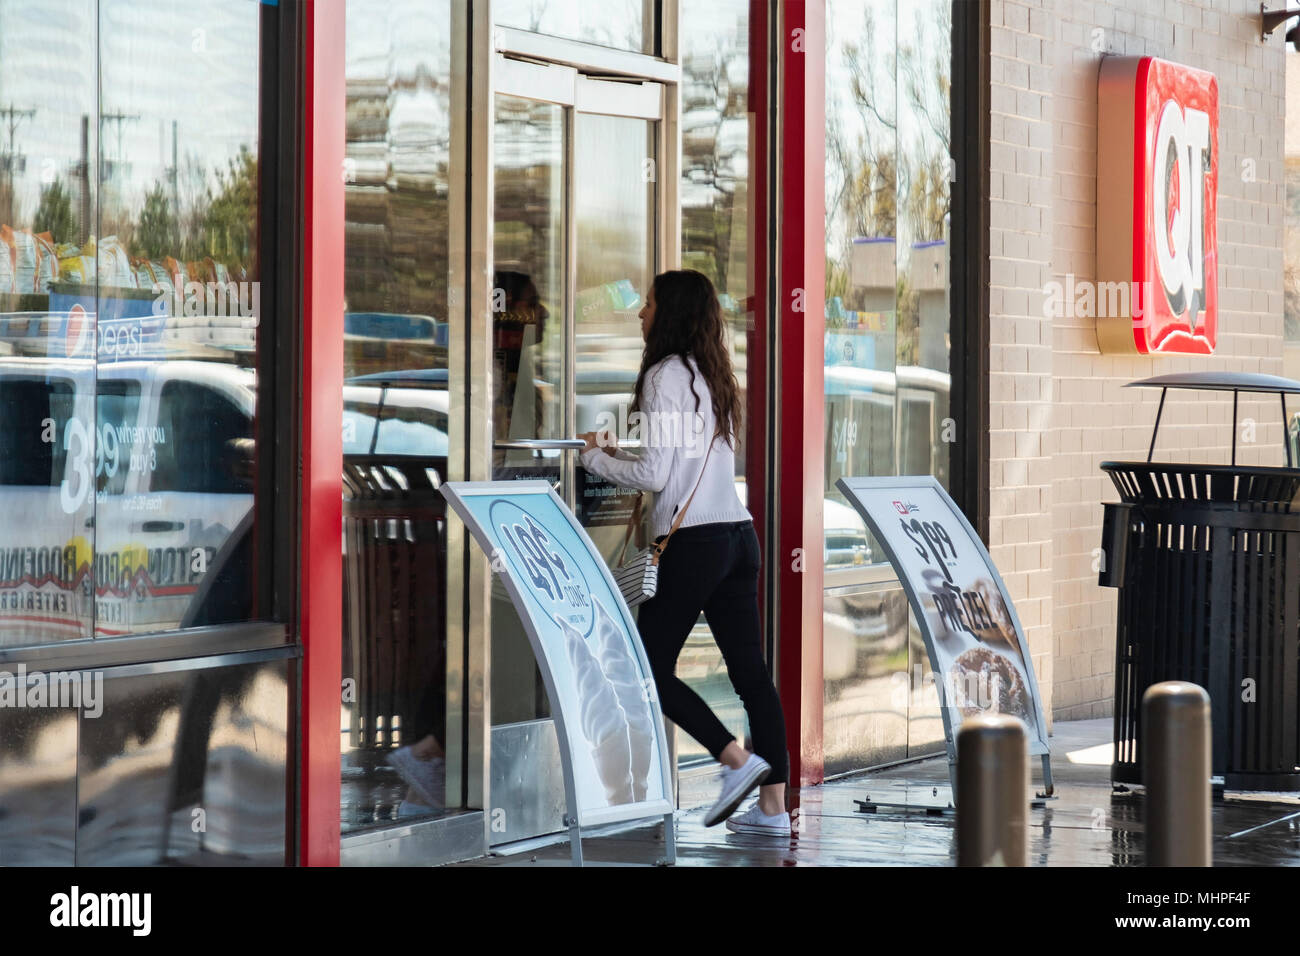 A woman customer entering a QT or QuickTrip store at Tyler and Maple in Wichita, Kansas, USA. - Stock Image